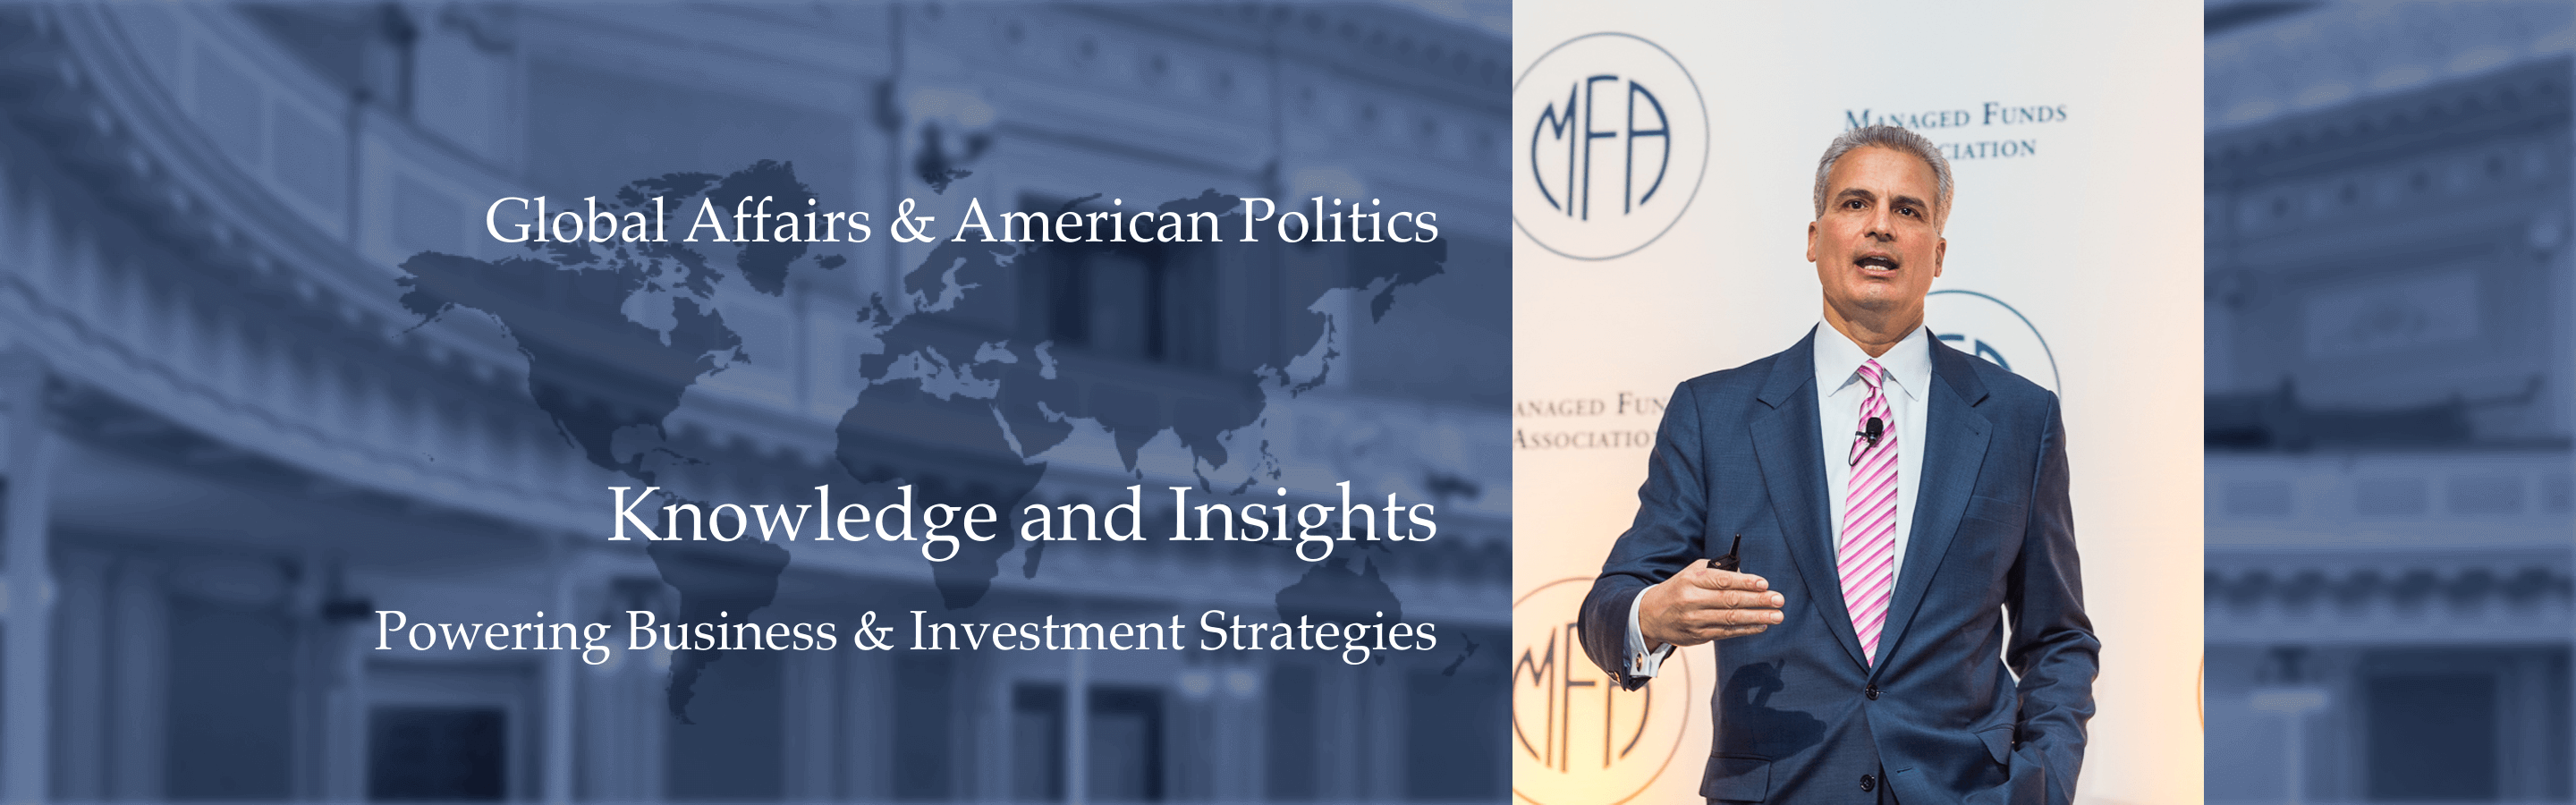 John Sitilides, Expert Speaker on Global Affairs & American Politics